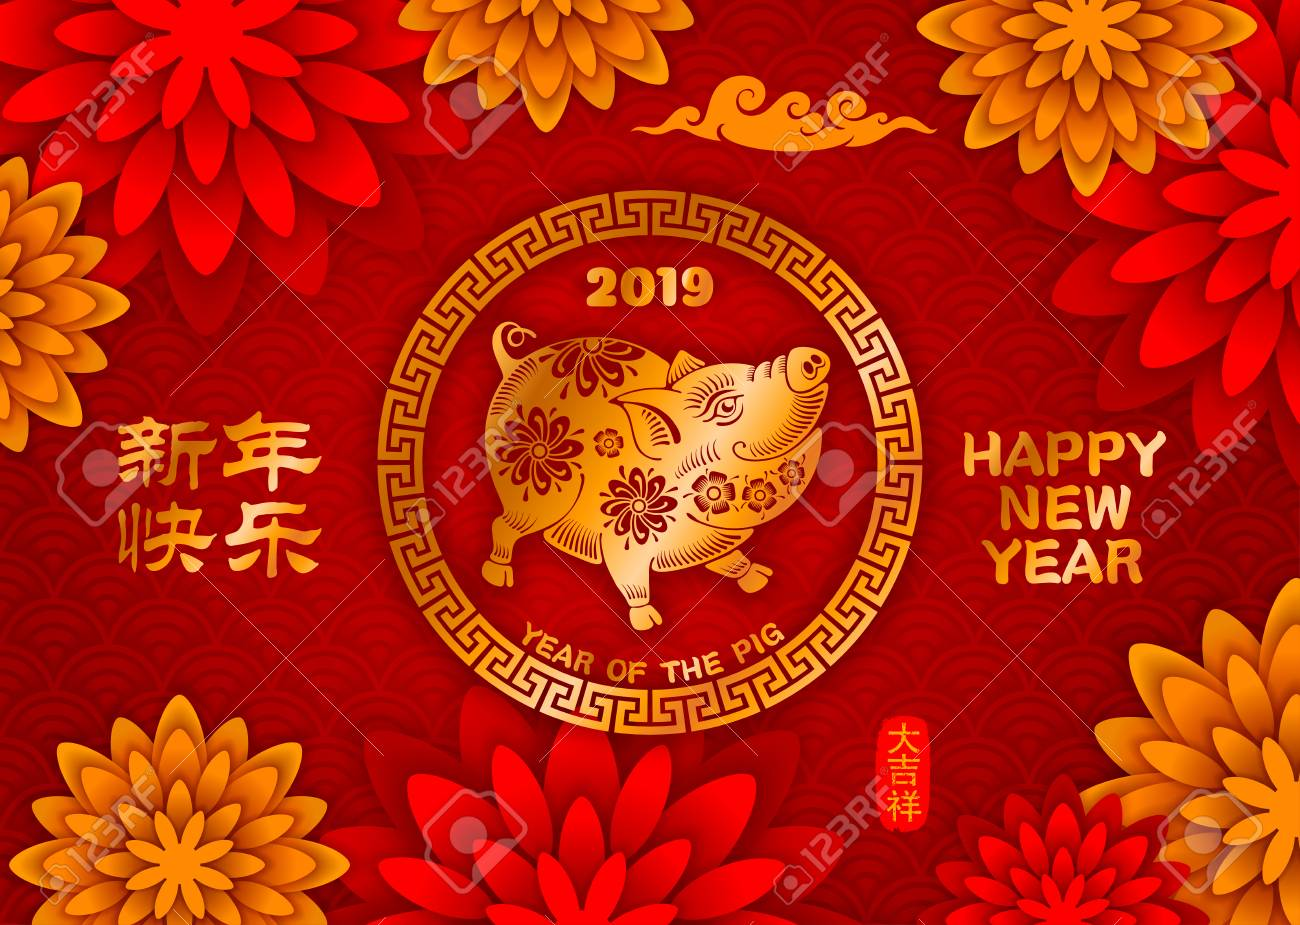 Chinese New Year 2019 festive card design with cute pig, zodiac symbol of 2019 year. Chinese Translation Happy New Year, wishes of good luck (on stamp). Vector illustration. - 104790592